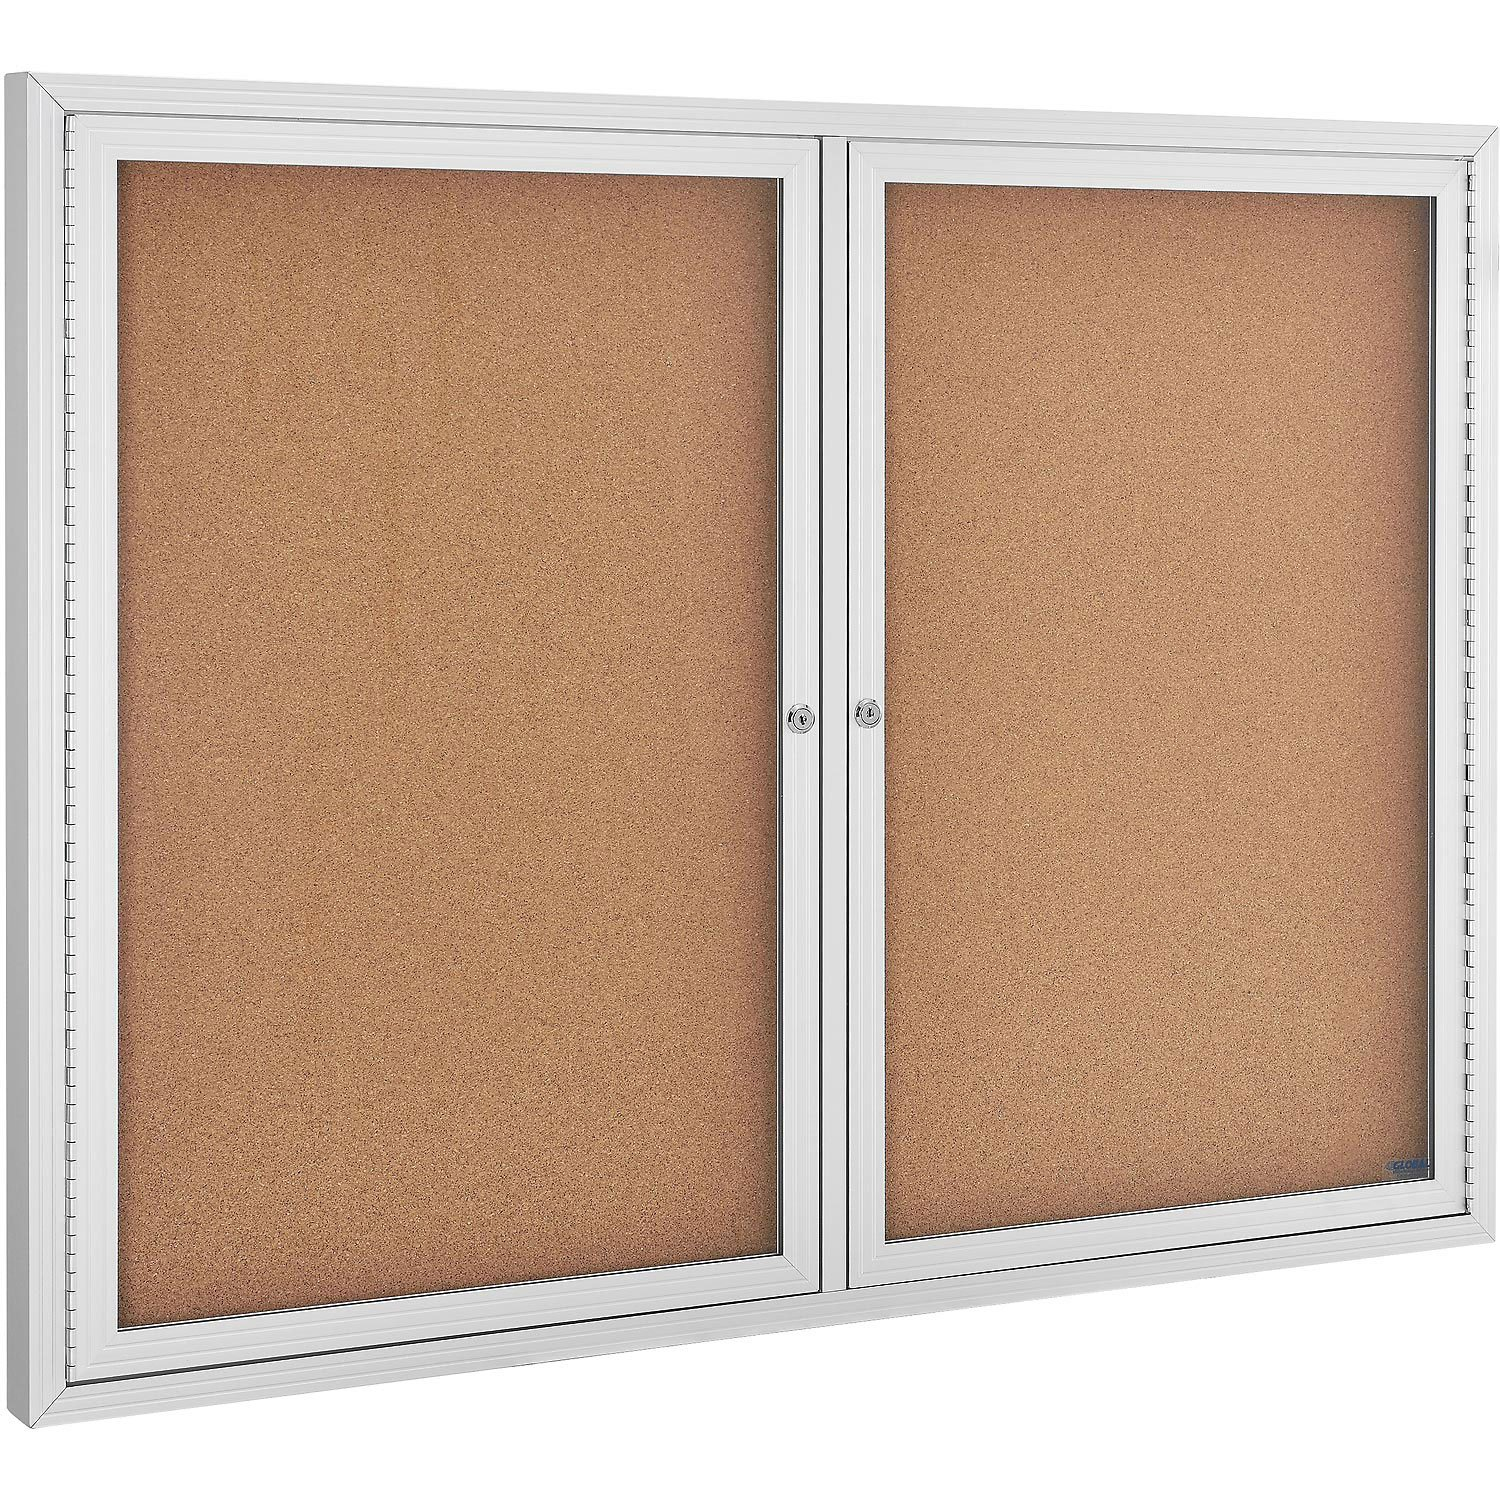 Enclosed Bulletin Board - Cork - Aluminum Frame - 48'' x 36'' - 2 Door